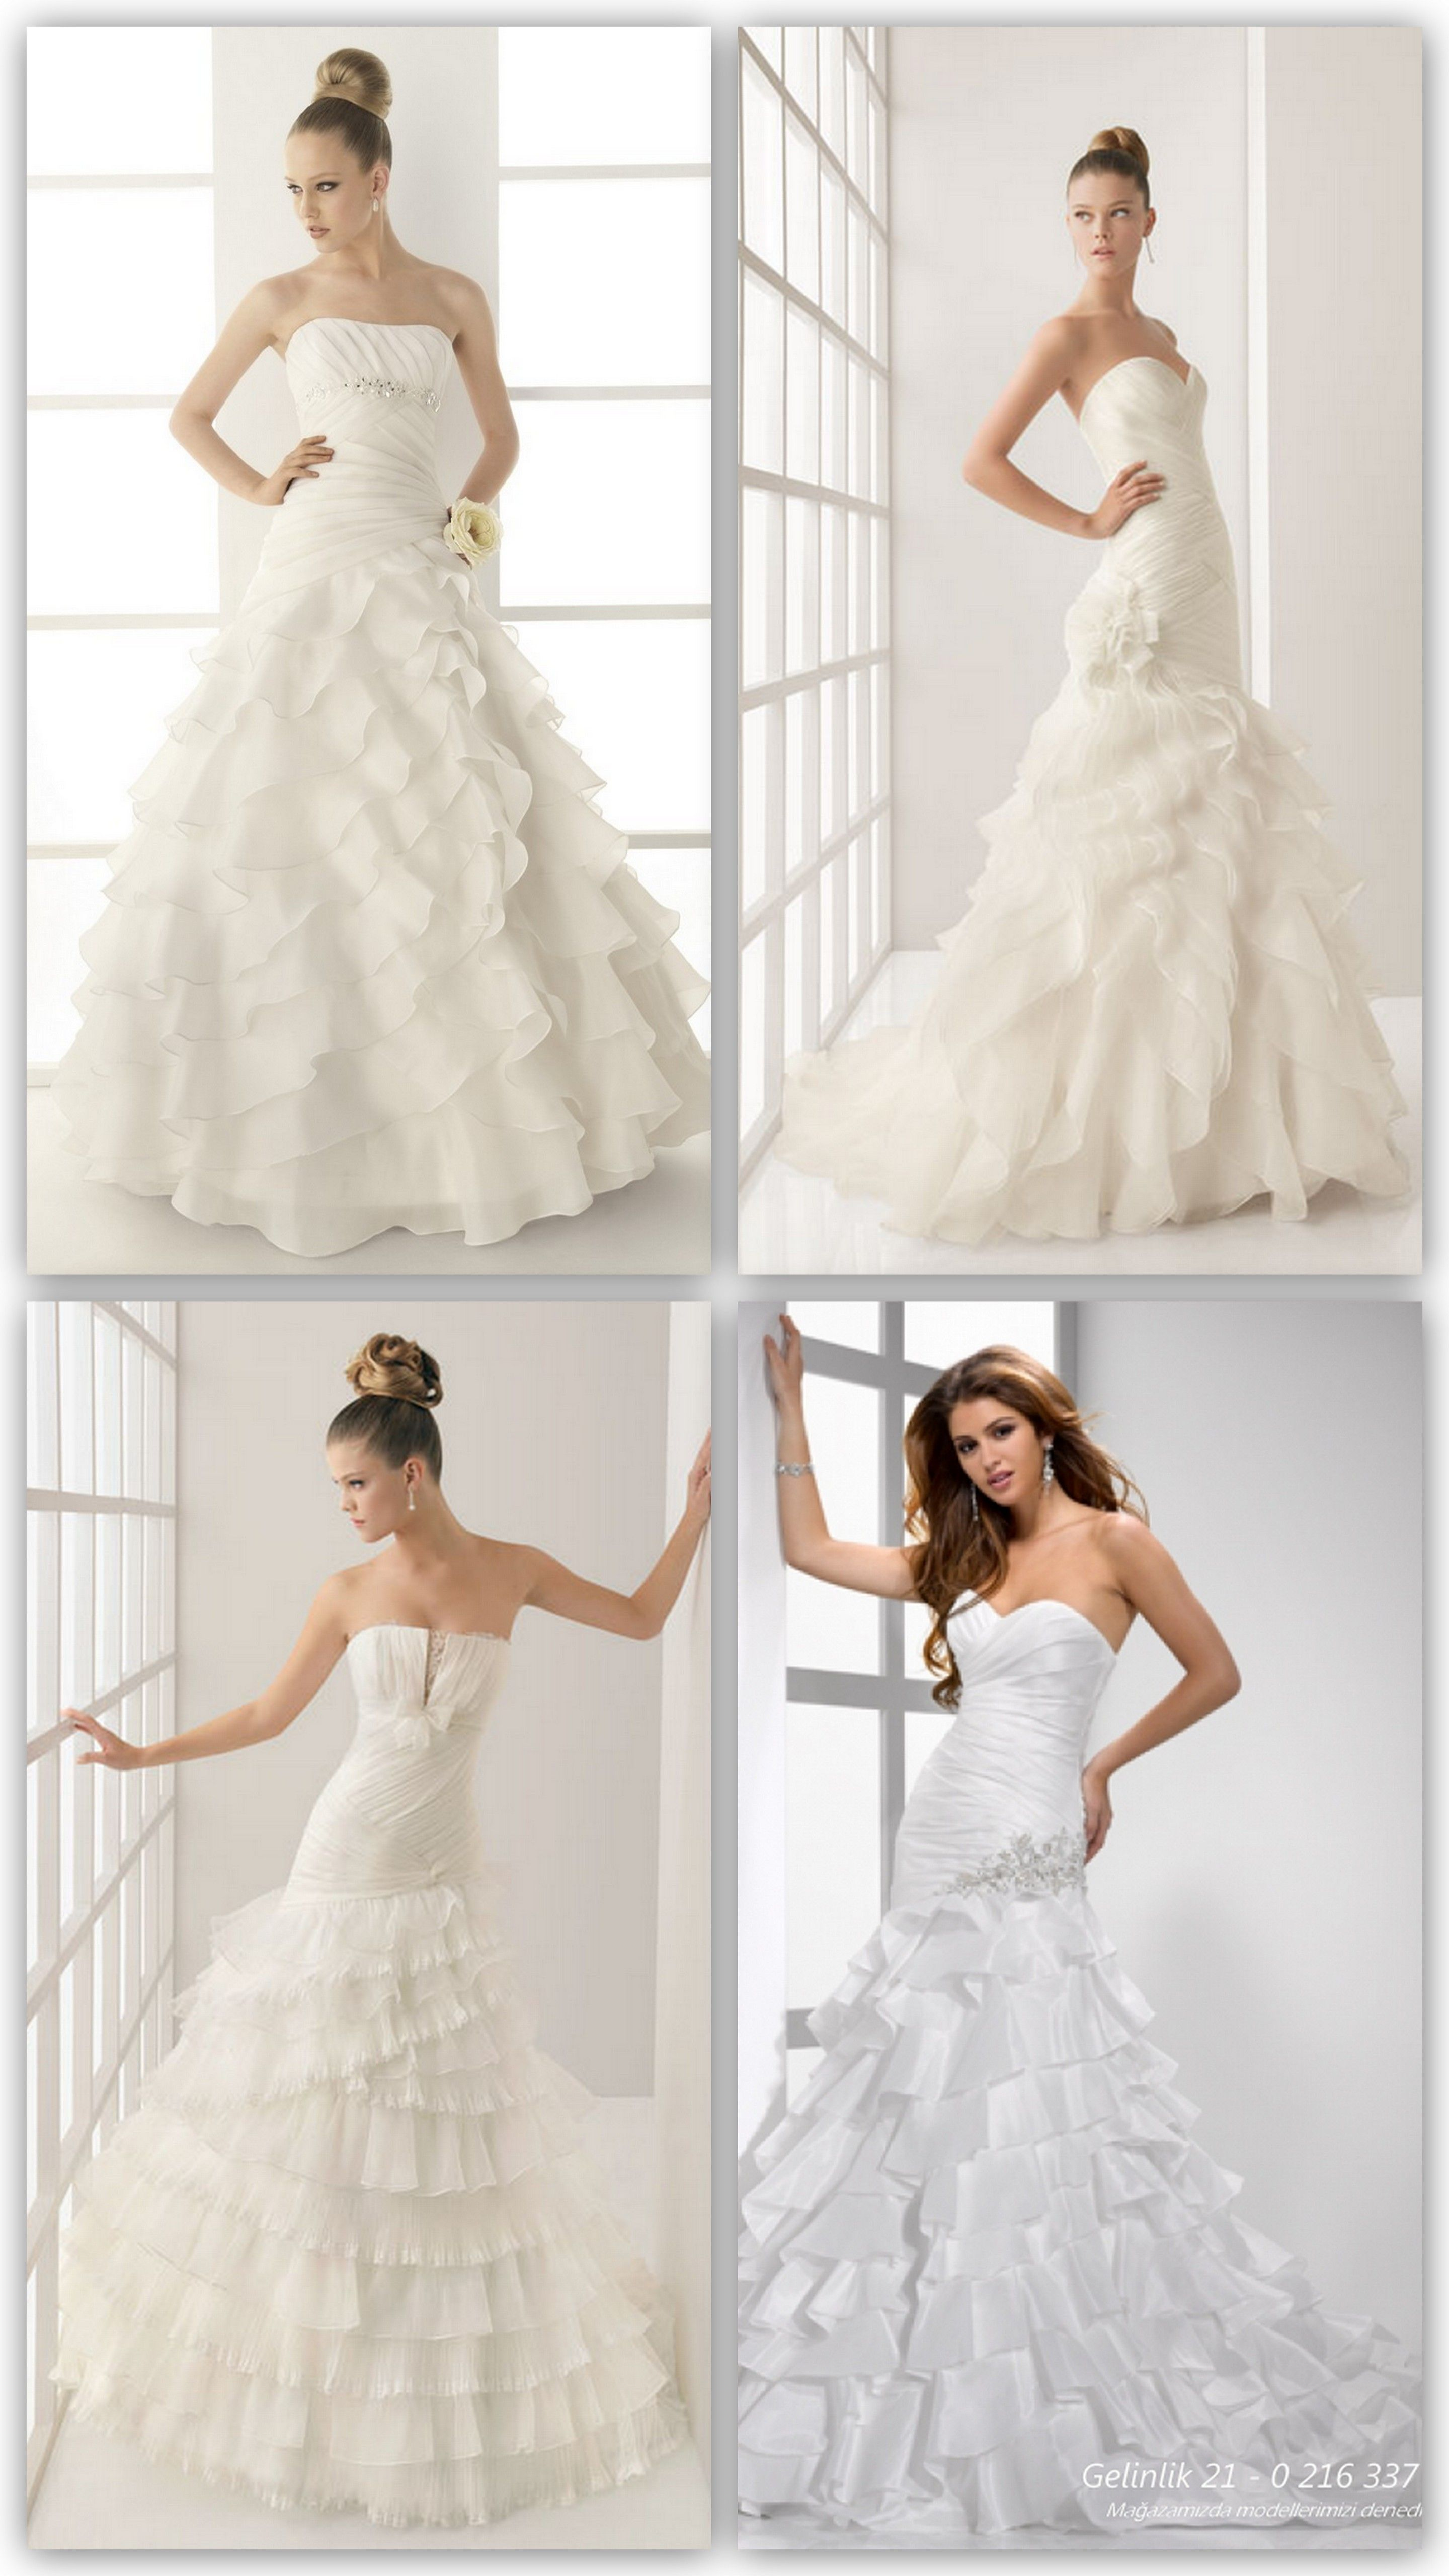 Fluffy wedding dresses  fluffy bridals  Bridal Gowns  Pinterest  Bridal gowns and Wedding